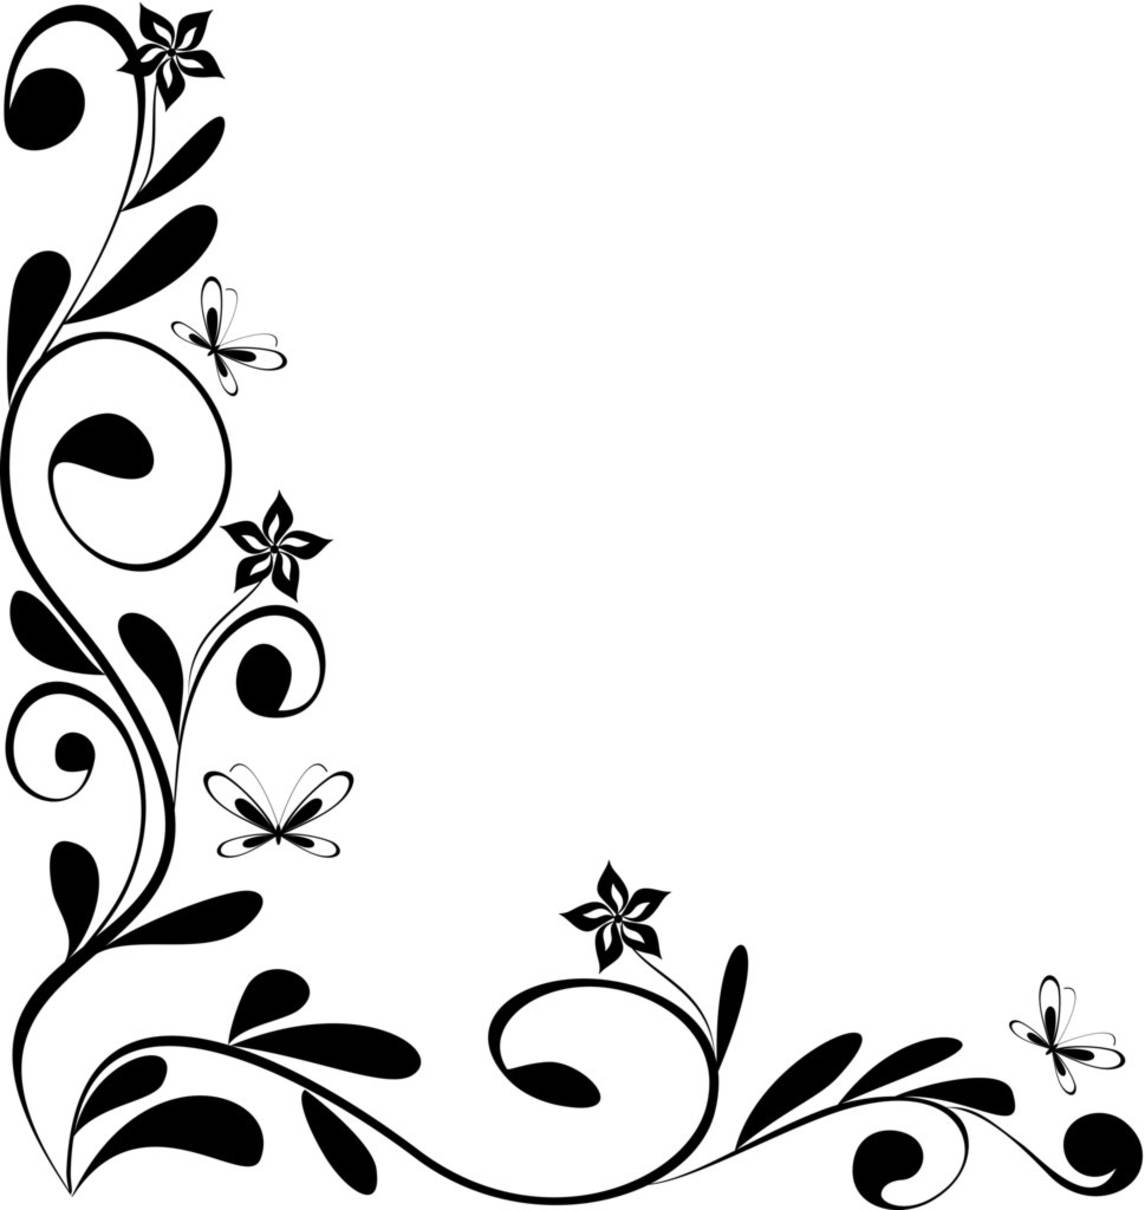 Best And Beautiful Black White Floral Corner Borders For Frames